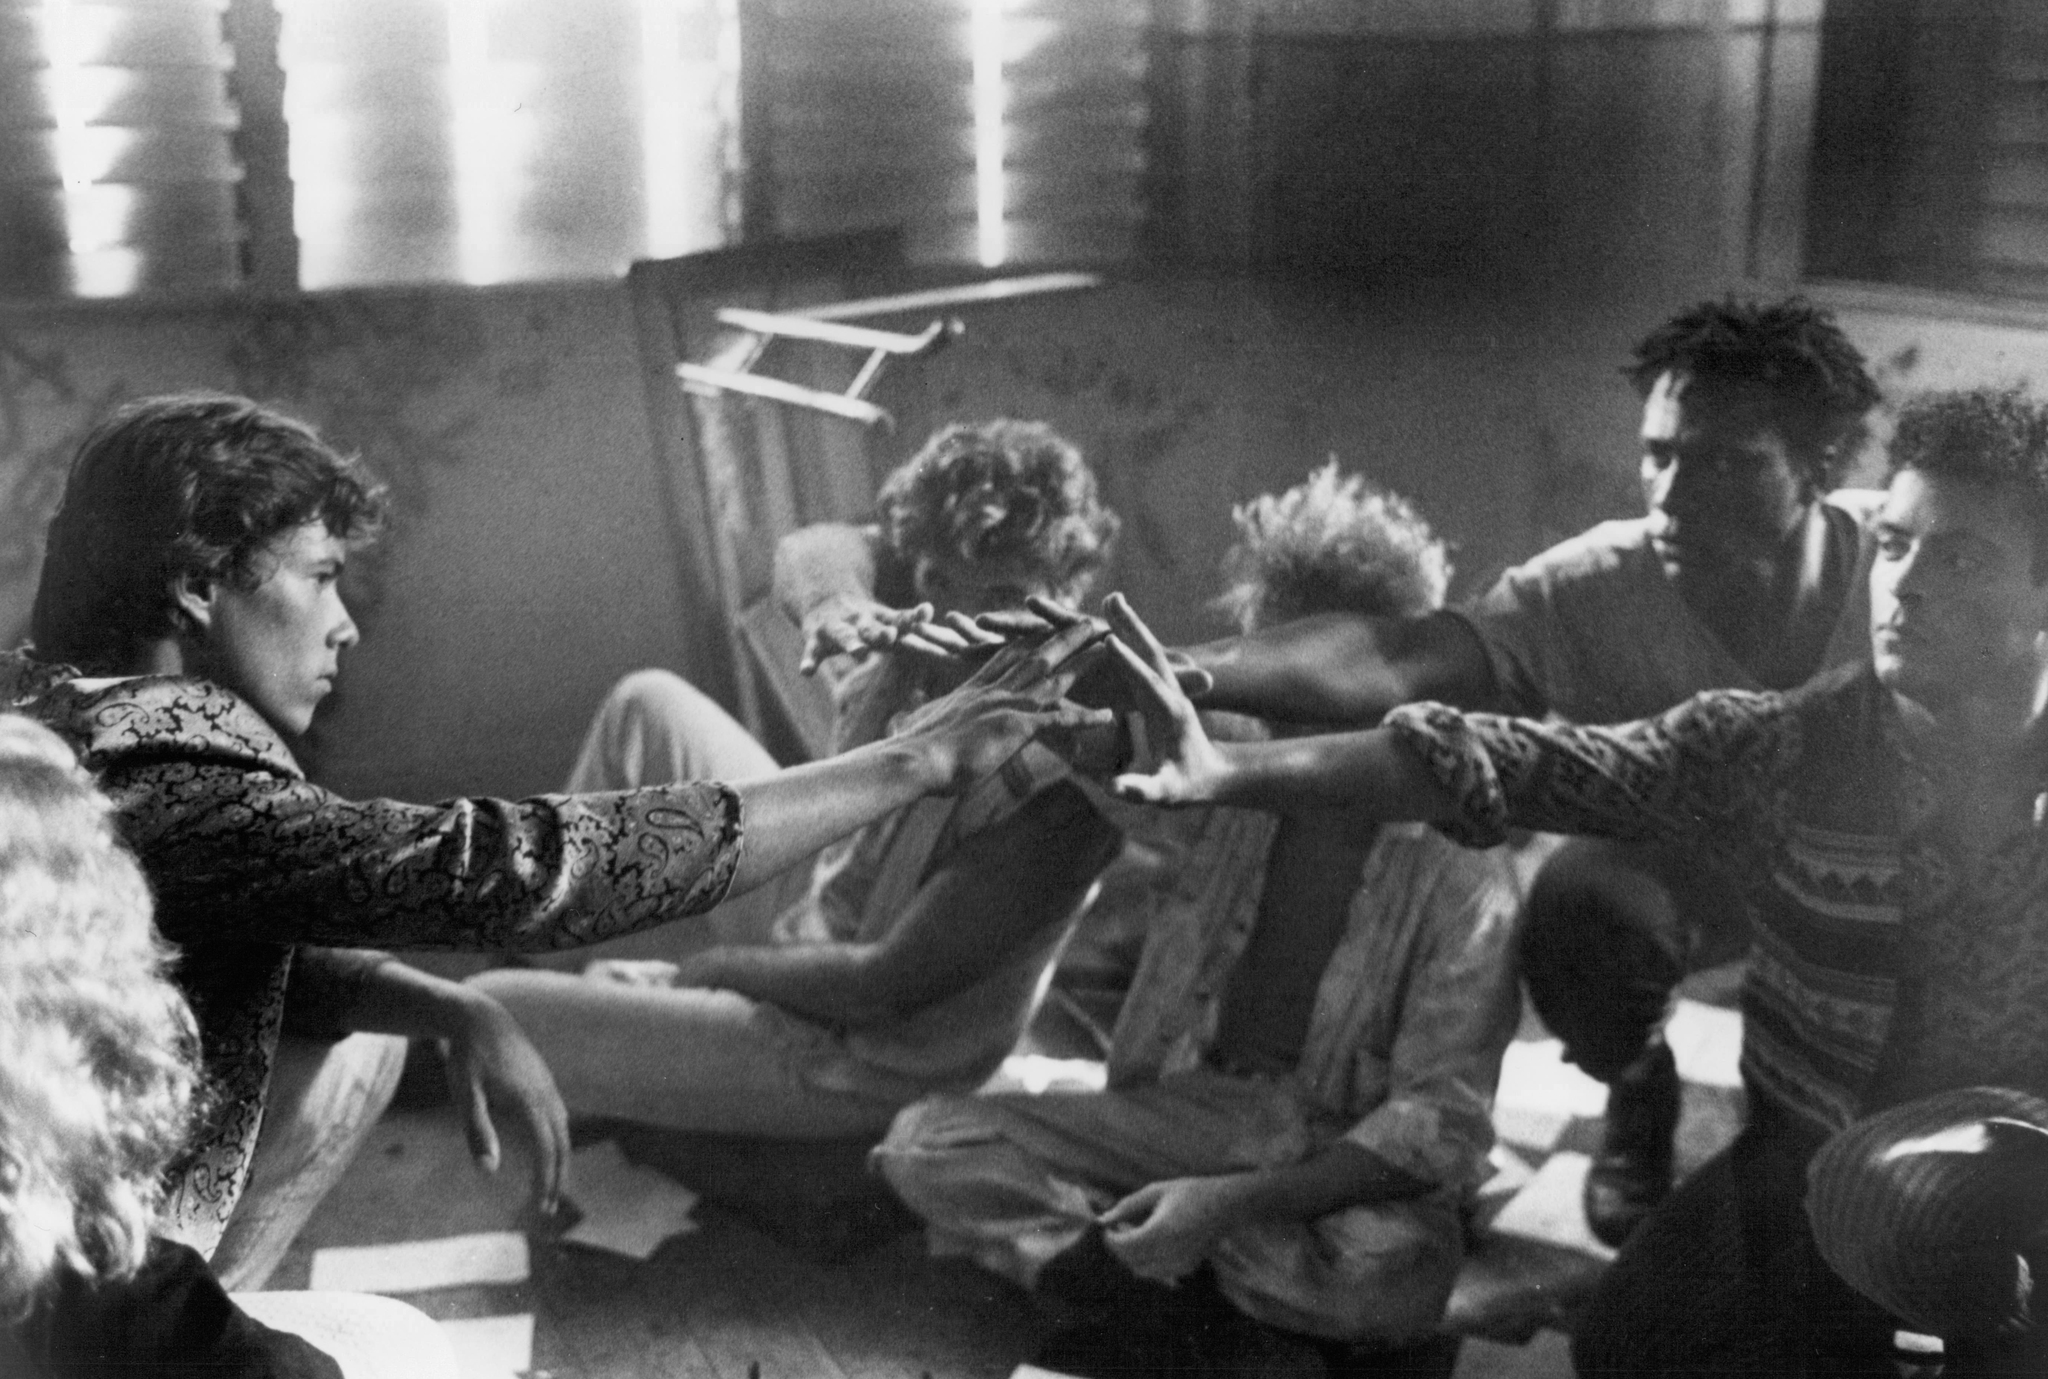 Michael Carmine, Leon, and Danny Quinn in Band of the Hand (1986)